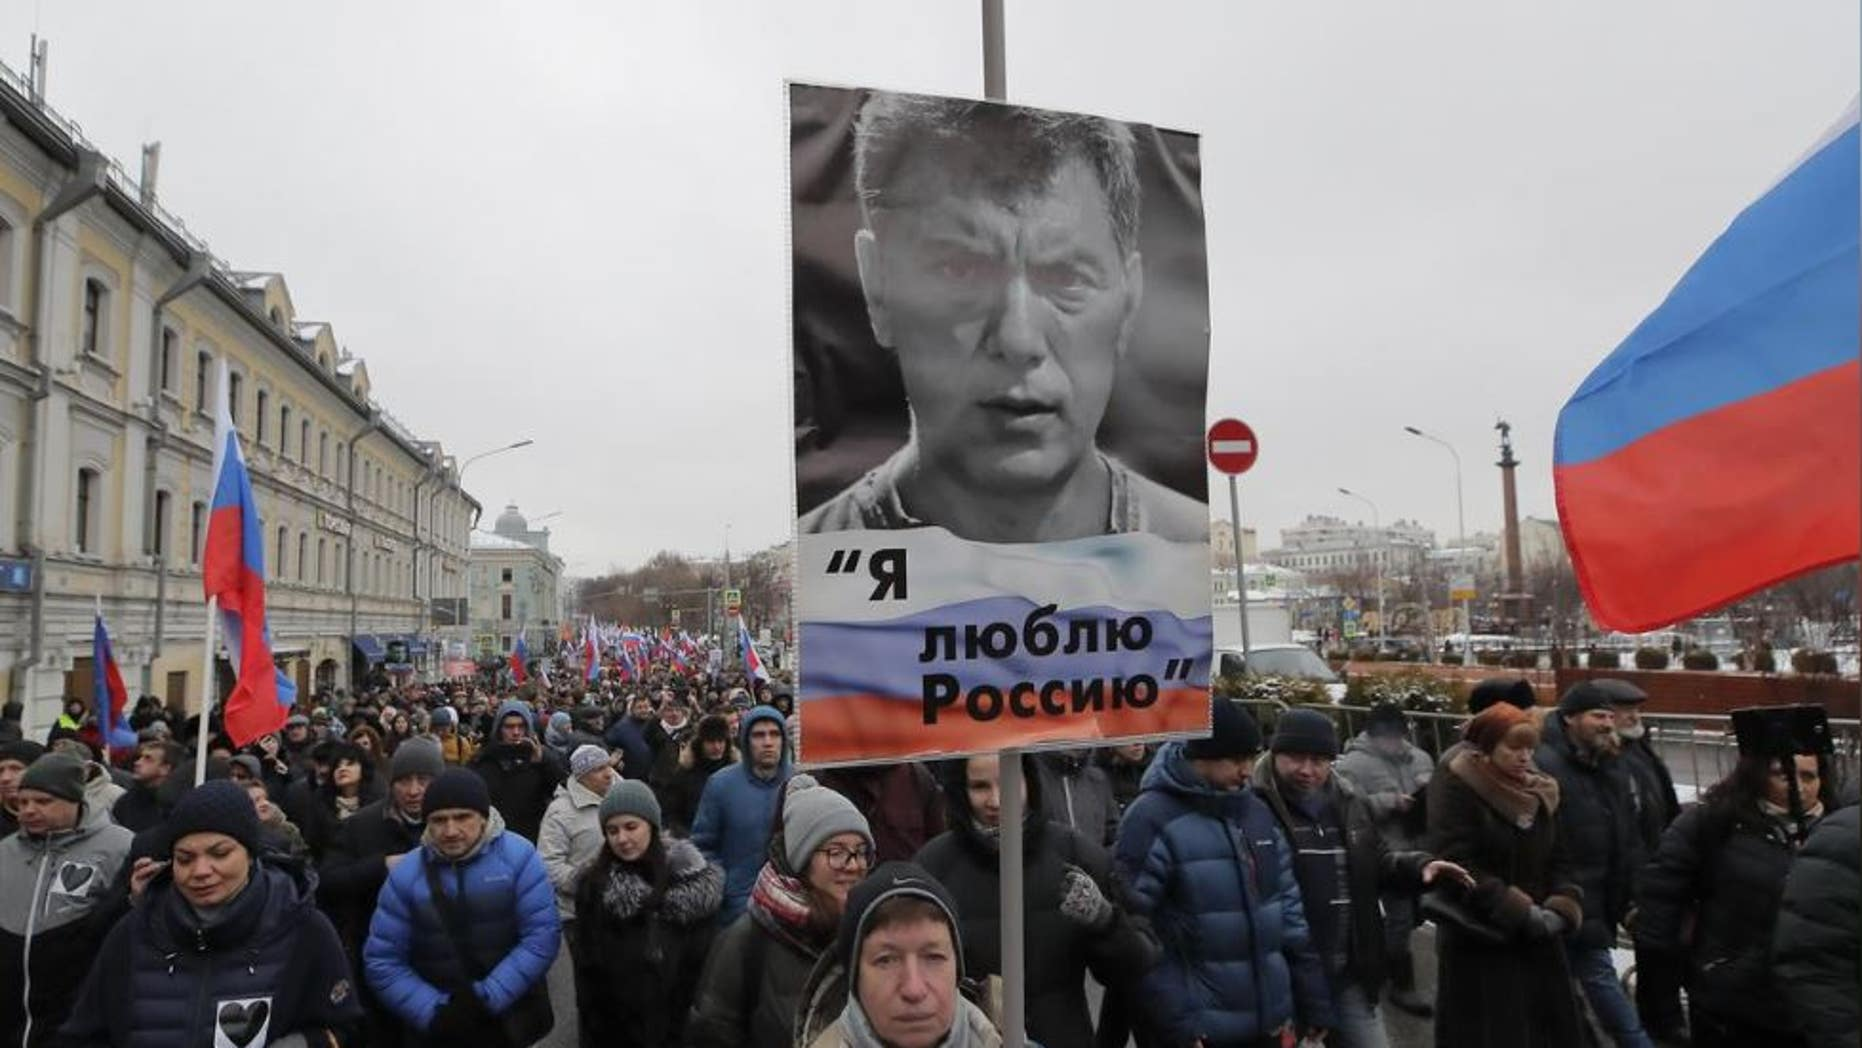 People attend the action of the memory of the Russian opposition politician Boris Nemtsov, who was killed in 201[ads1]5, in Moscow, Russia, on February 24, 2019. Poster reads